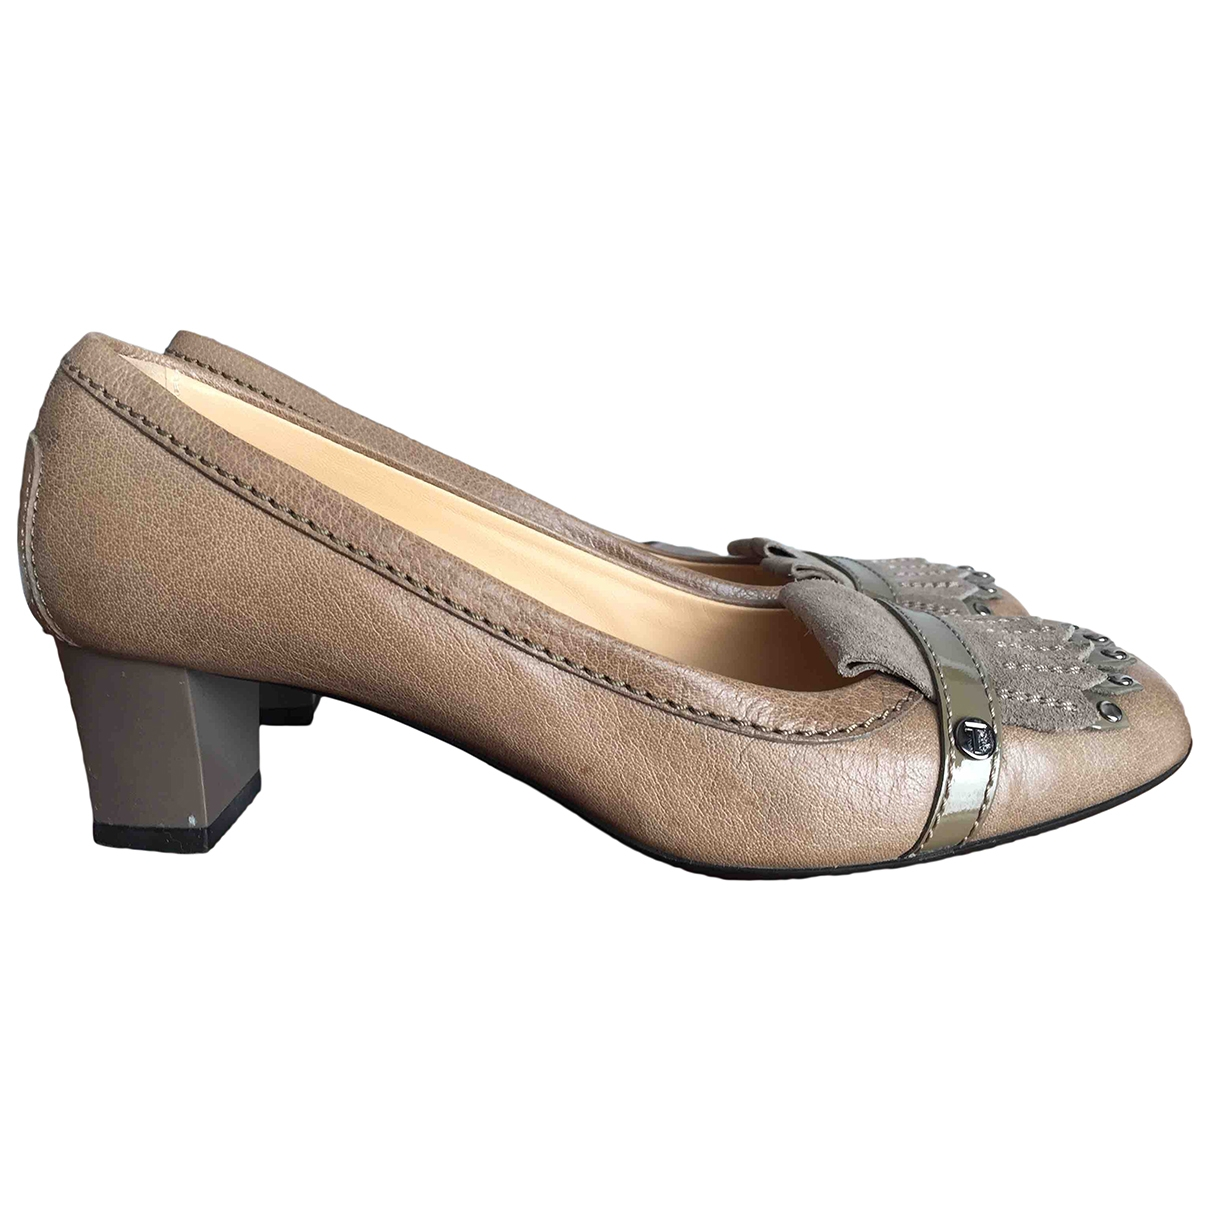 Tod's \N Camel Leather Heels for Women 37 EU